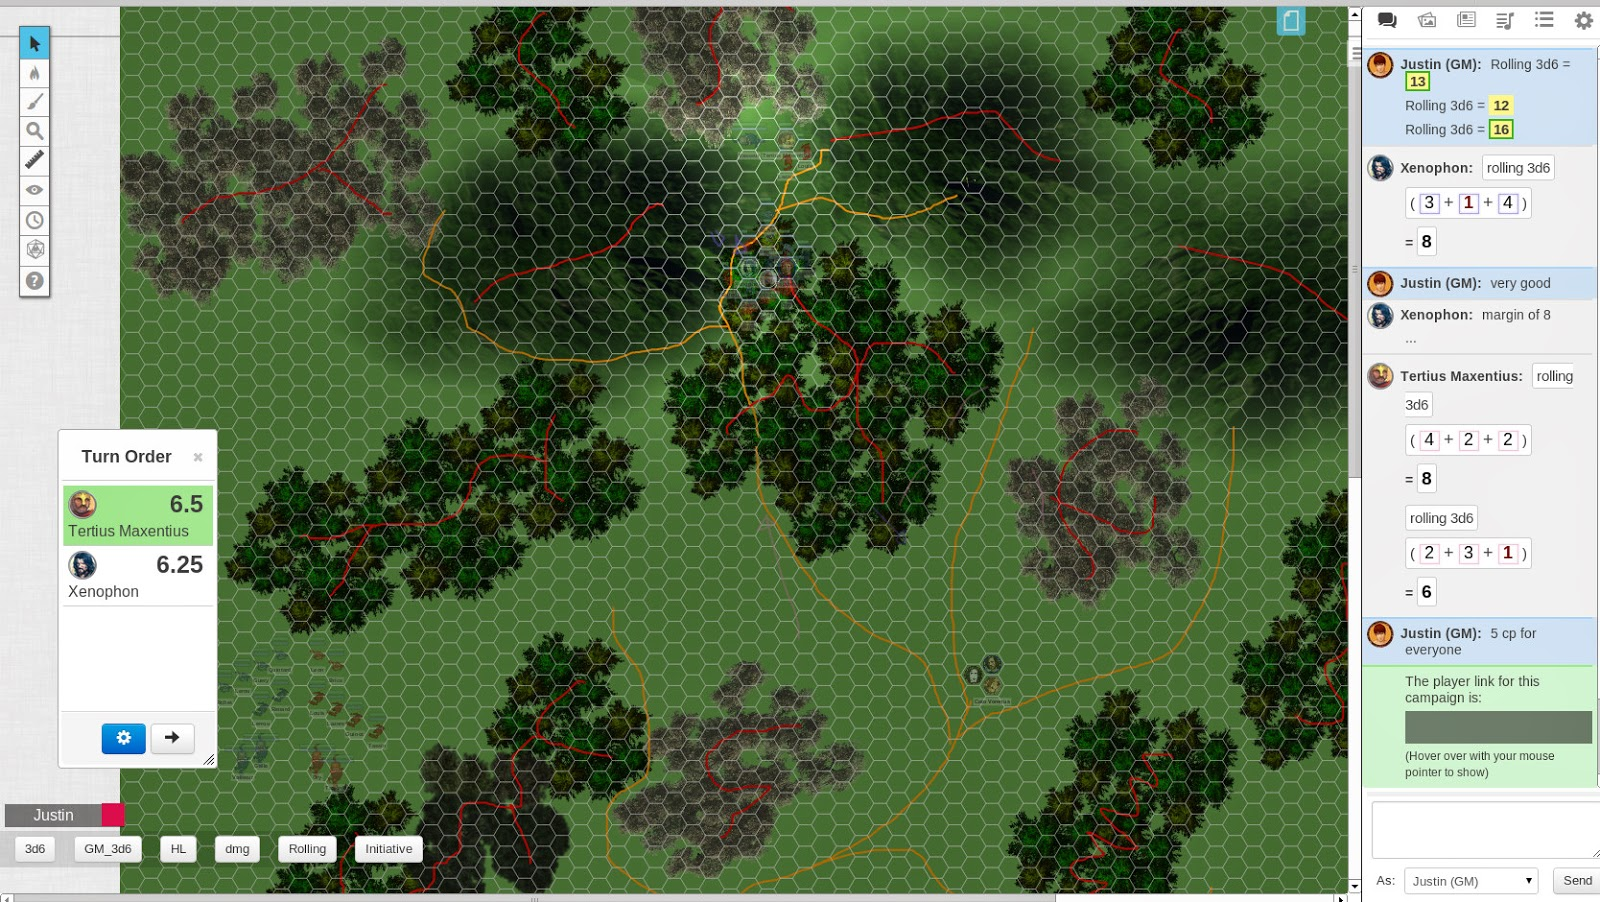 Game In The Brain May 2014 & Dynamic Lighting Roll20 - Democraciaejustica